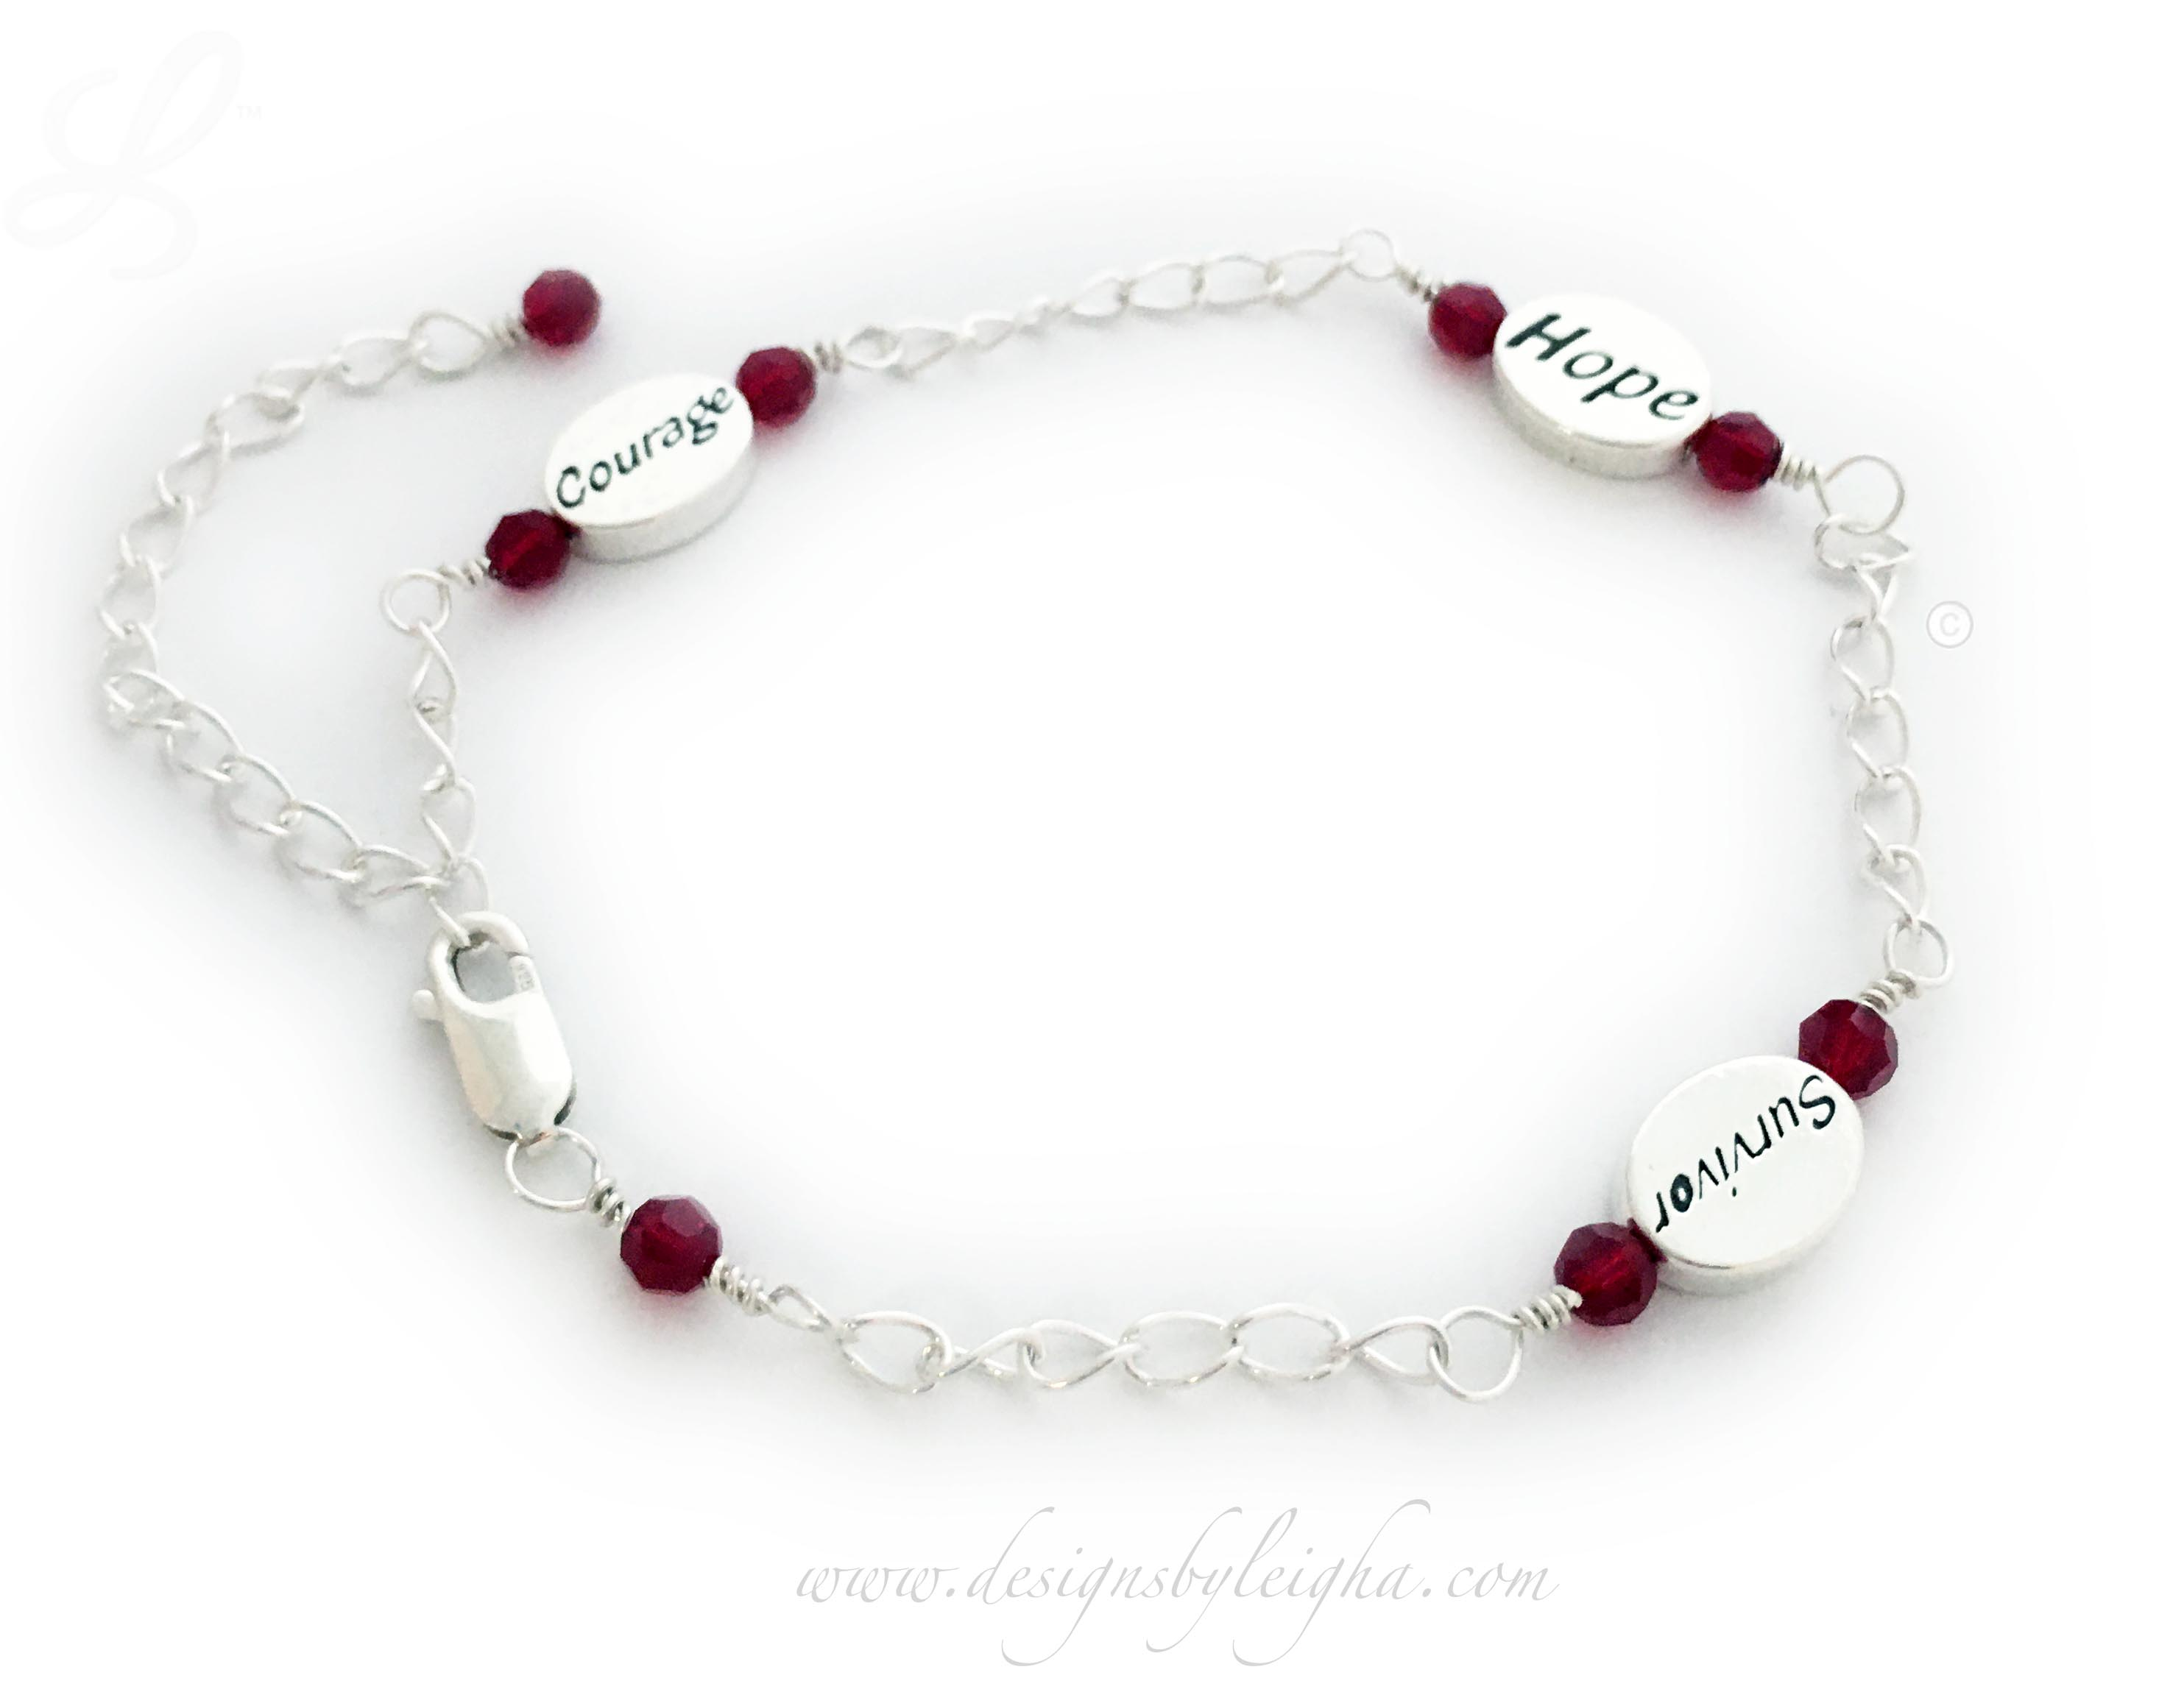 Red Ribbon Anklet shown with 3 message beads: Courage, Hope and Survivor